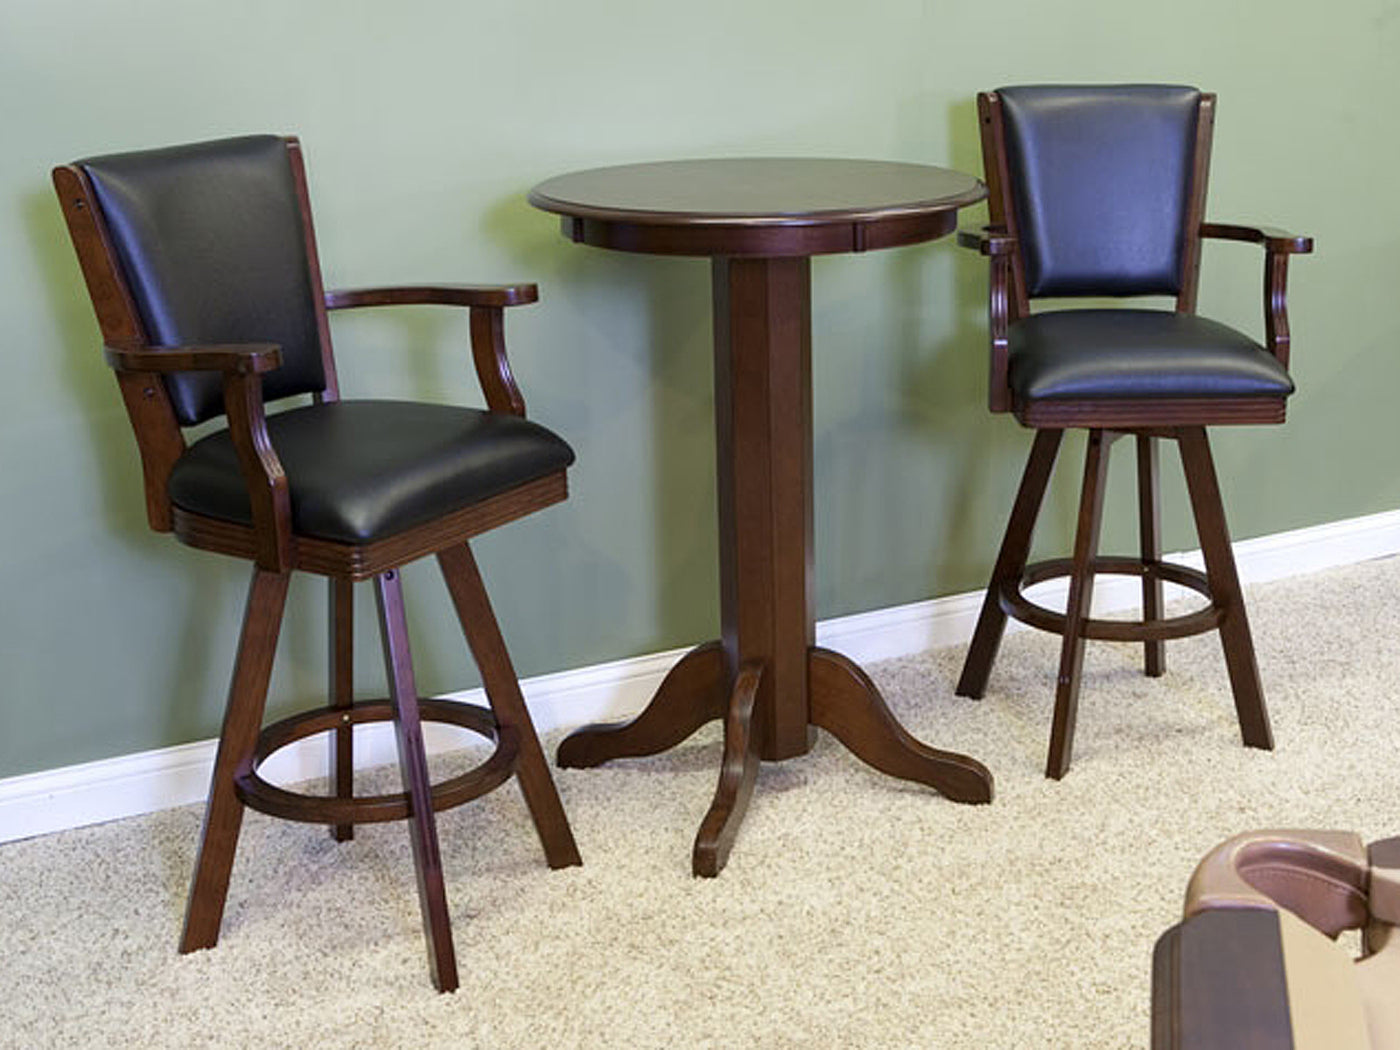 Cl bailey bar stool warm chestnut stock